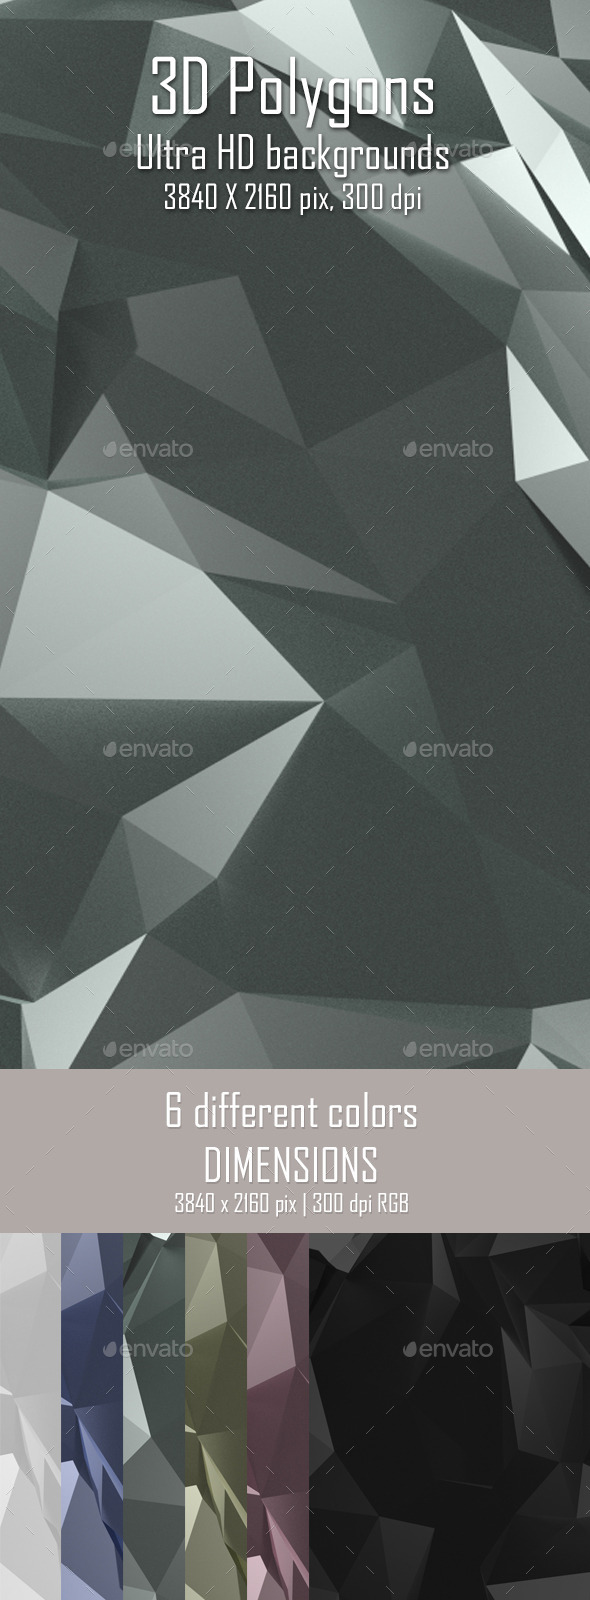 3D Polygon Background - 3D Backgrounds